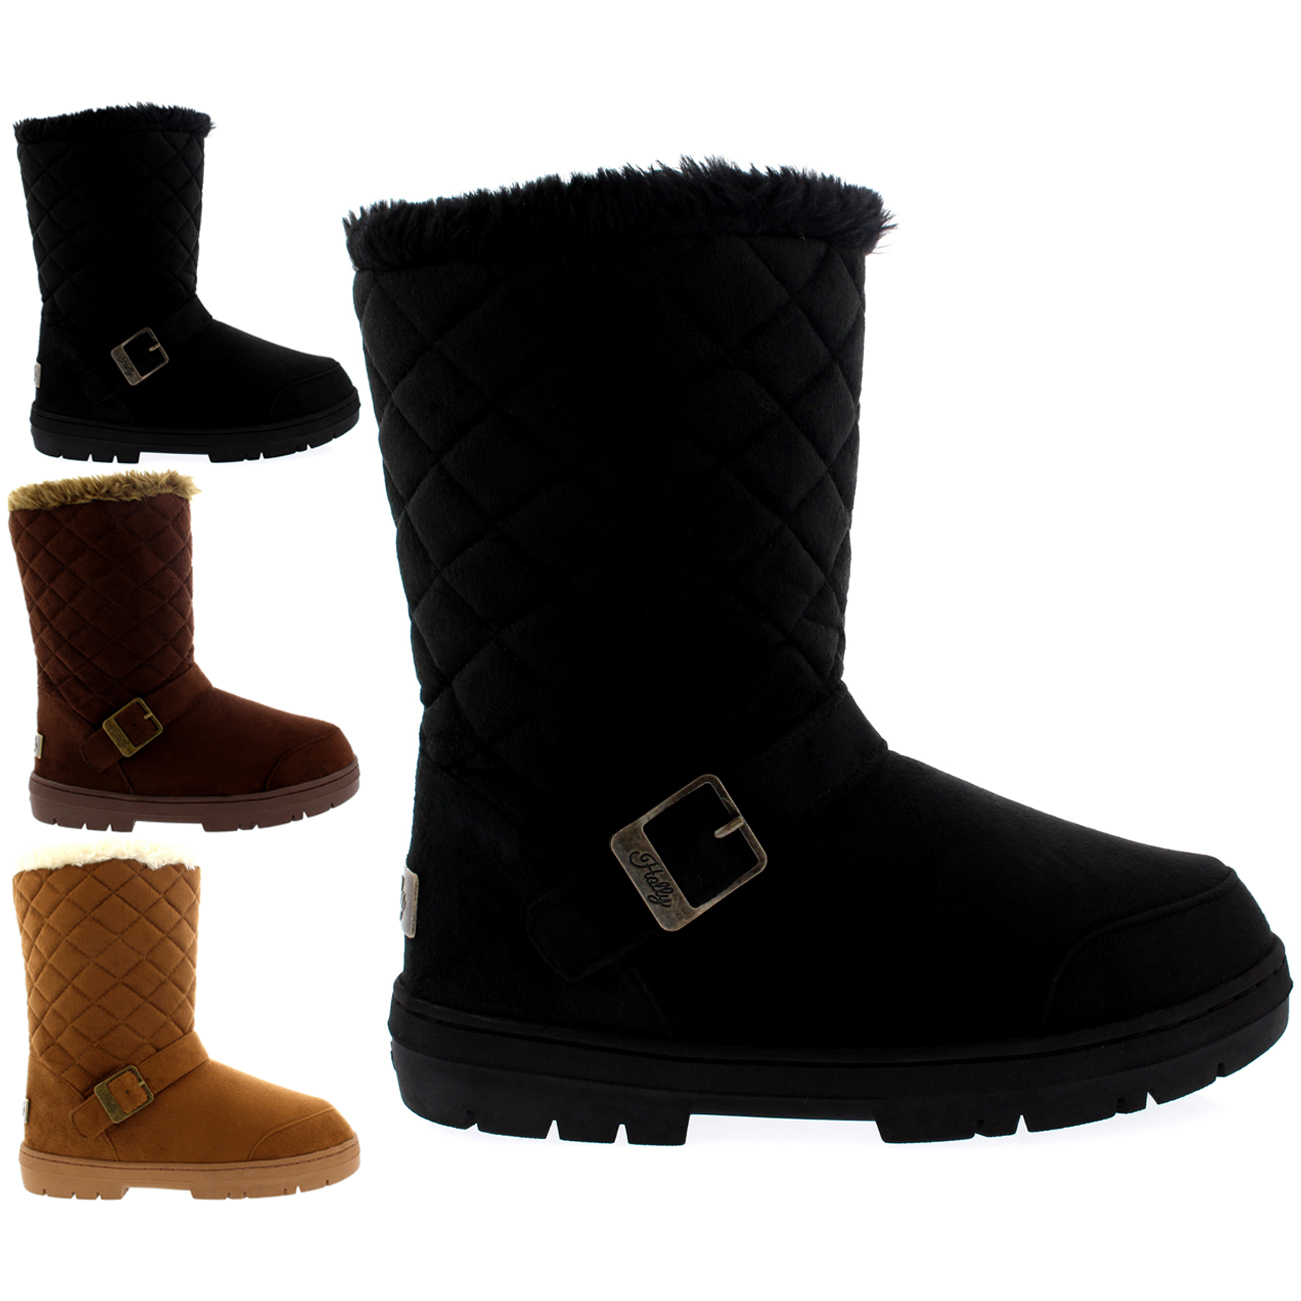 One Buckle Classic Short Quilted Boots